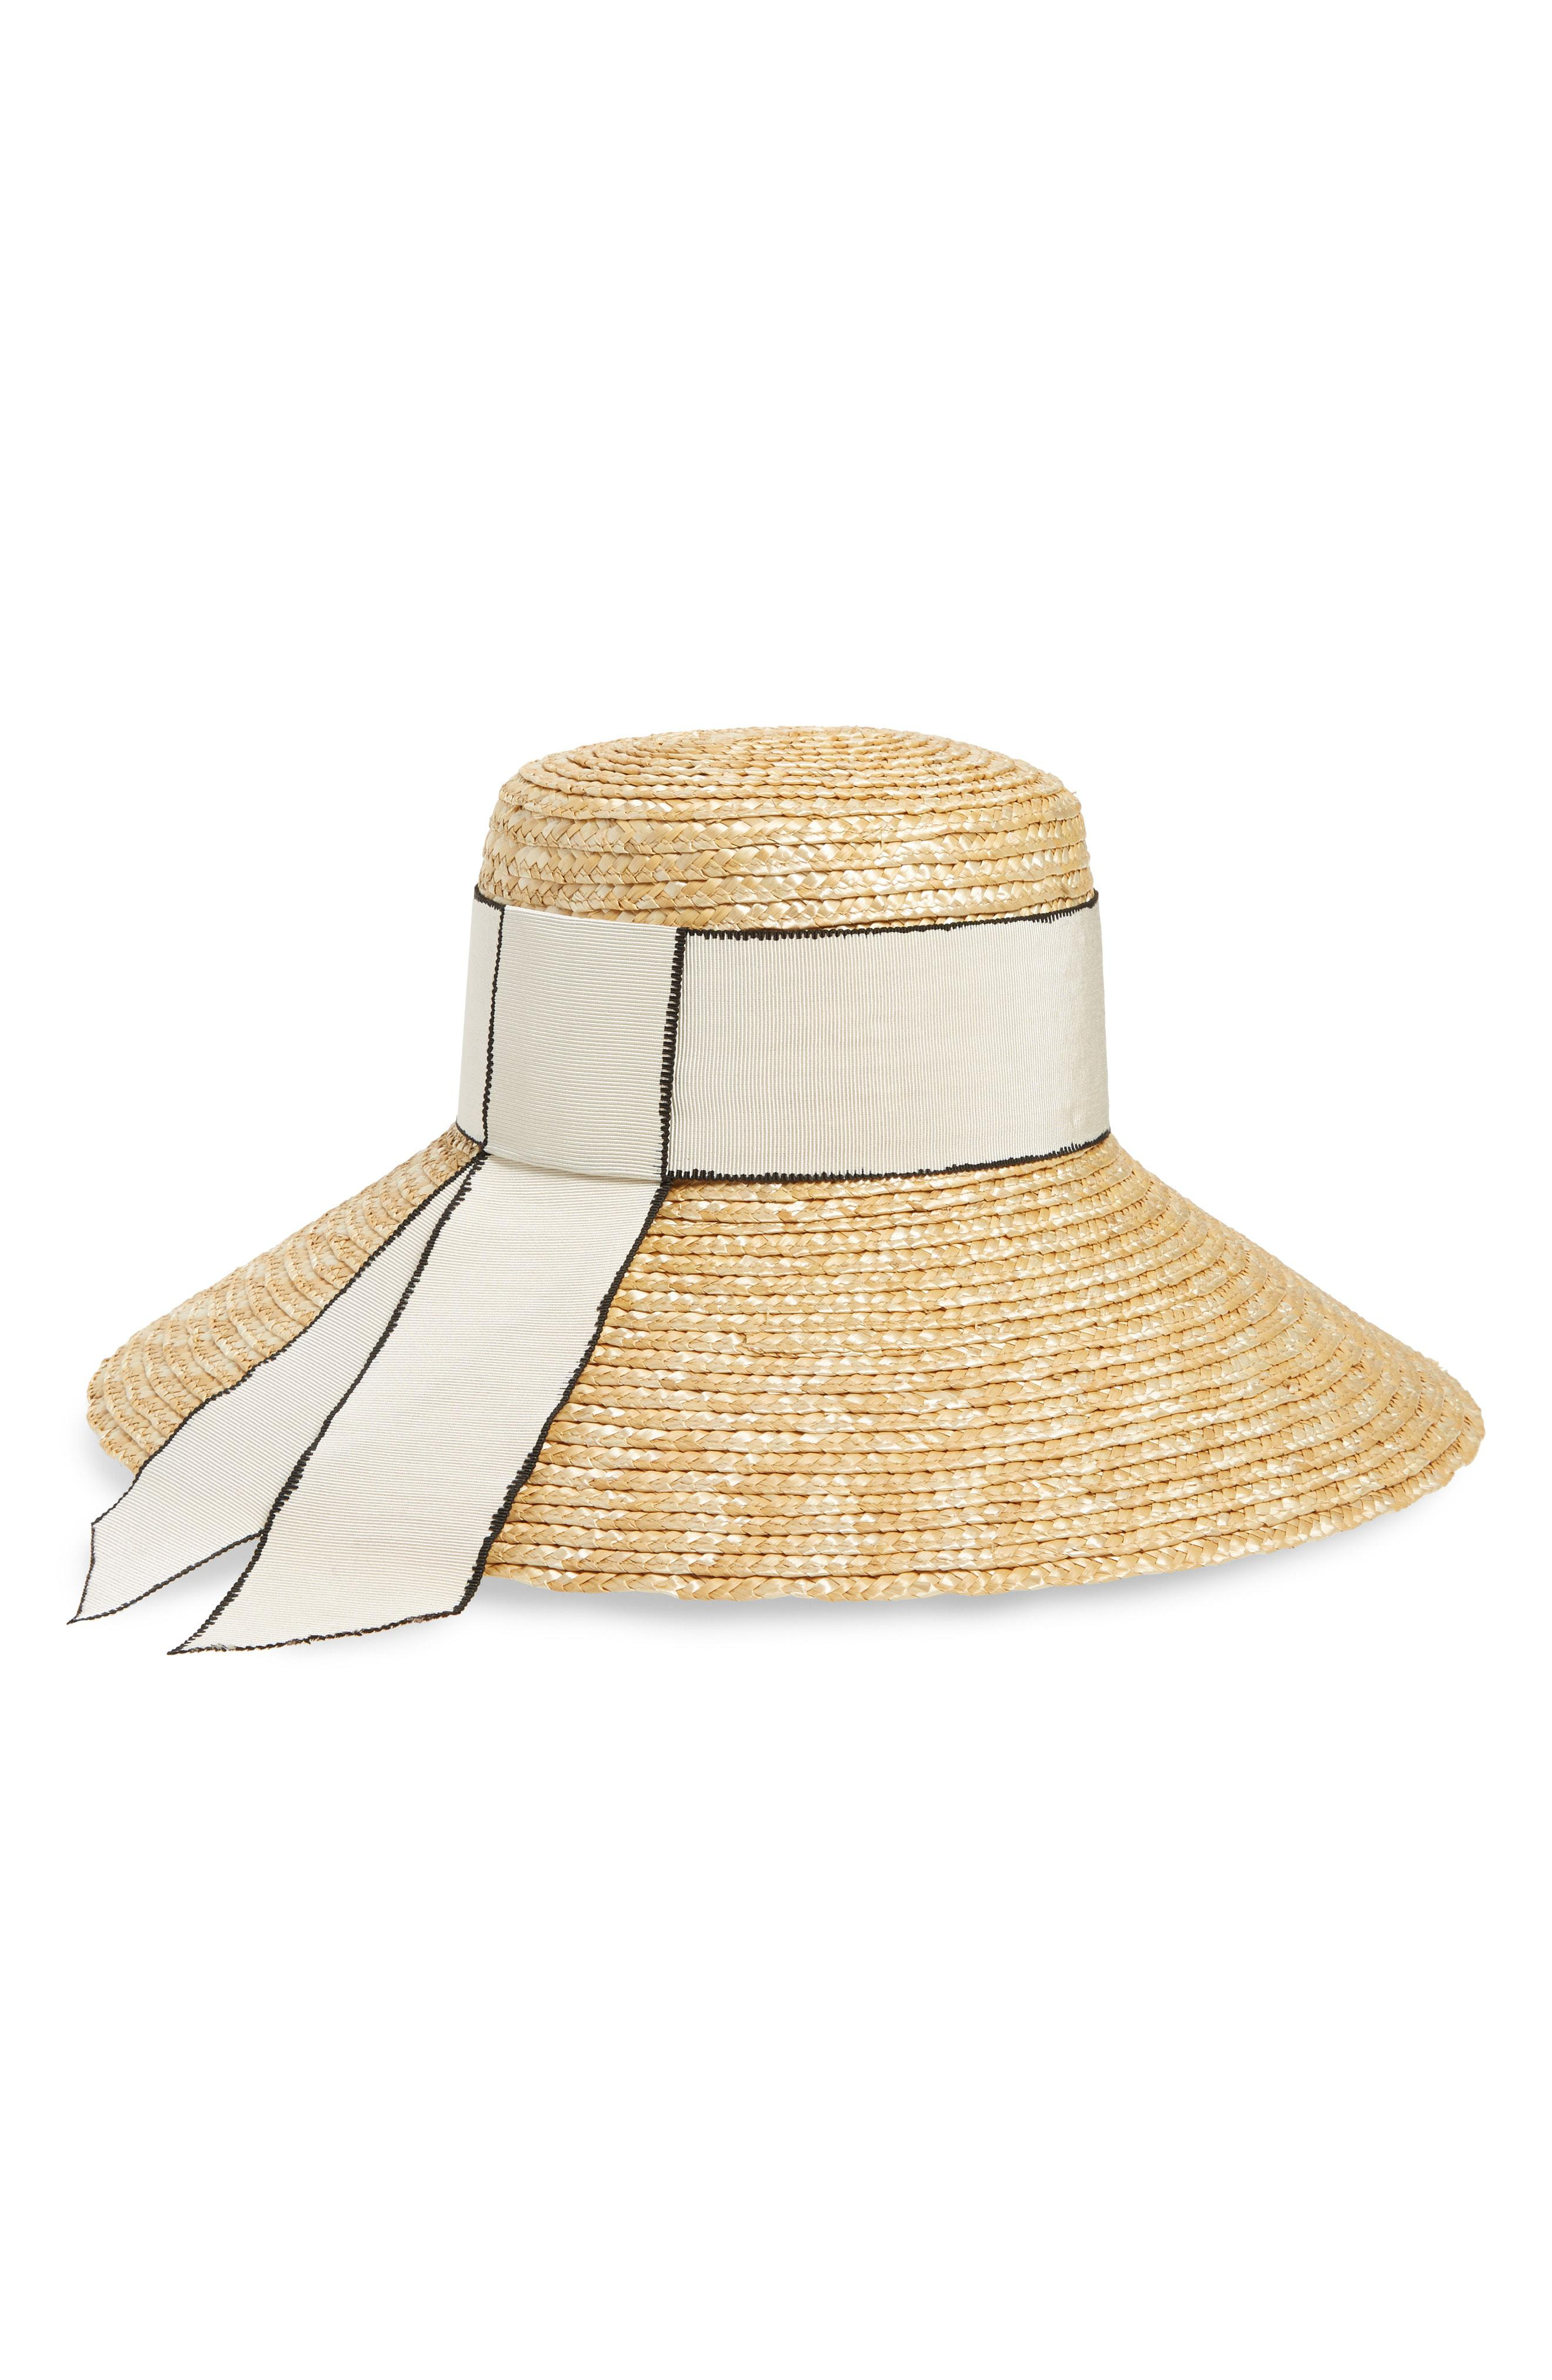 cdd49abf4071d Lyst - Eugenia Kim Annabelle Grosgrain-trimmed Straw Hat in Natural ...